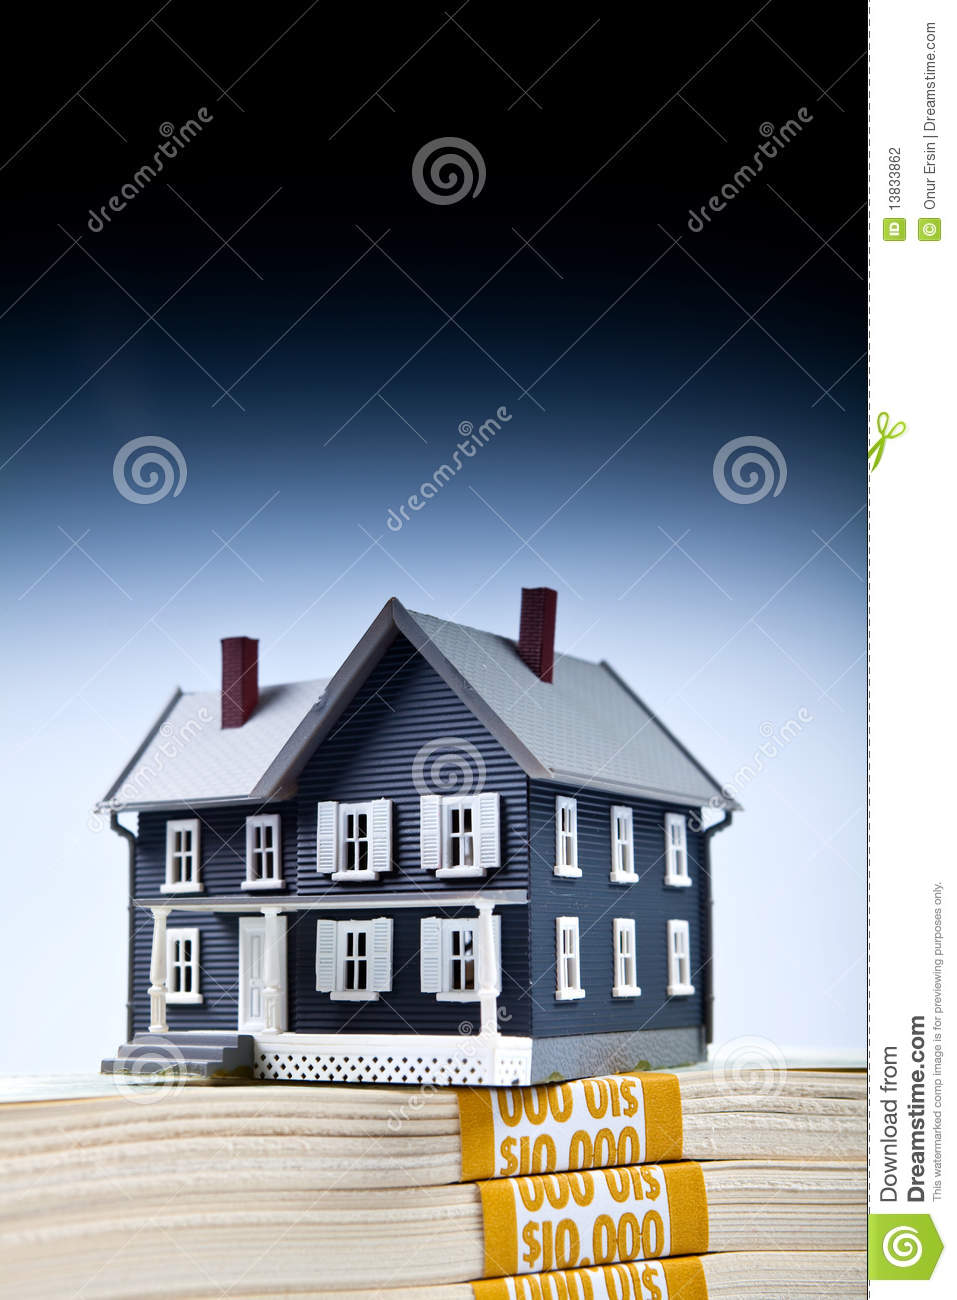 Down Payment For House Stock Photography Image 13833862